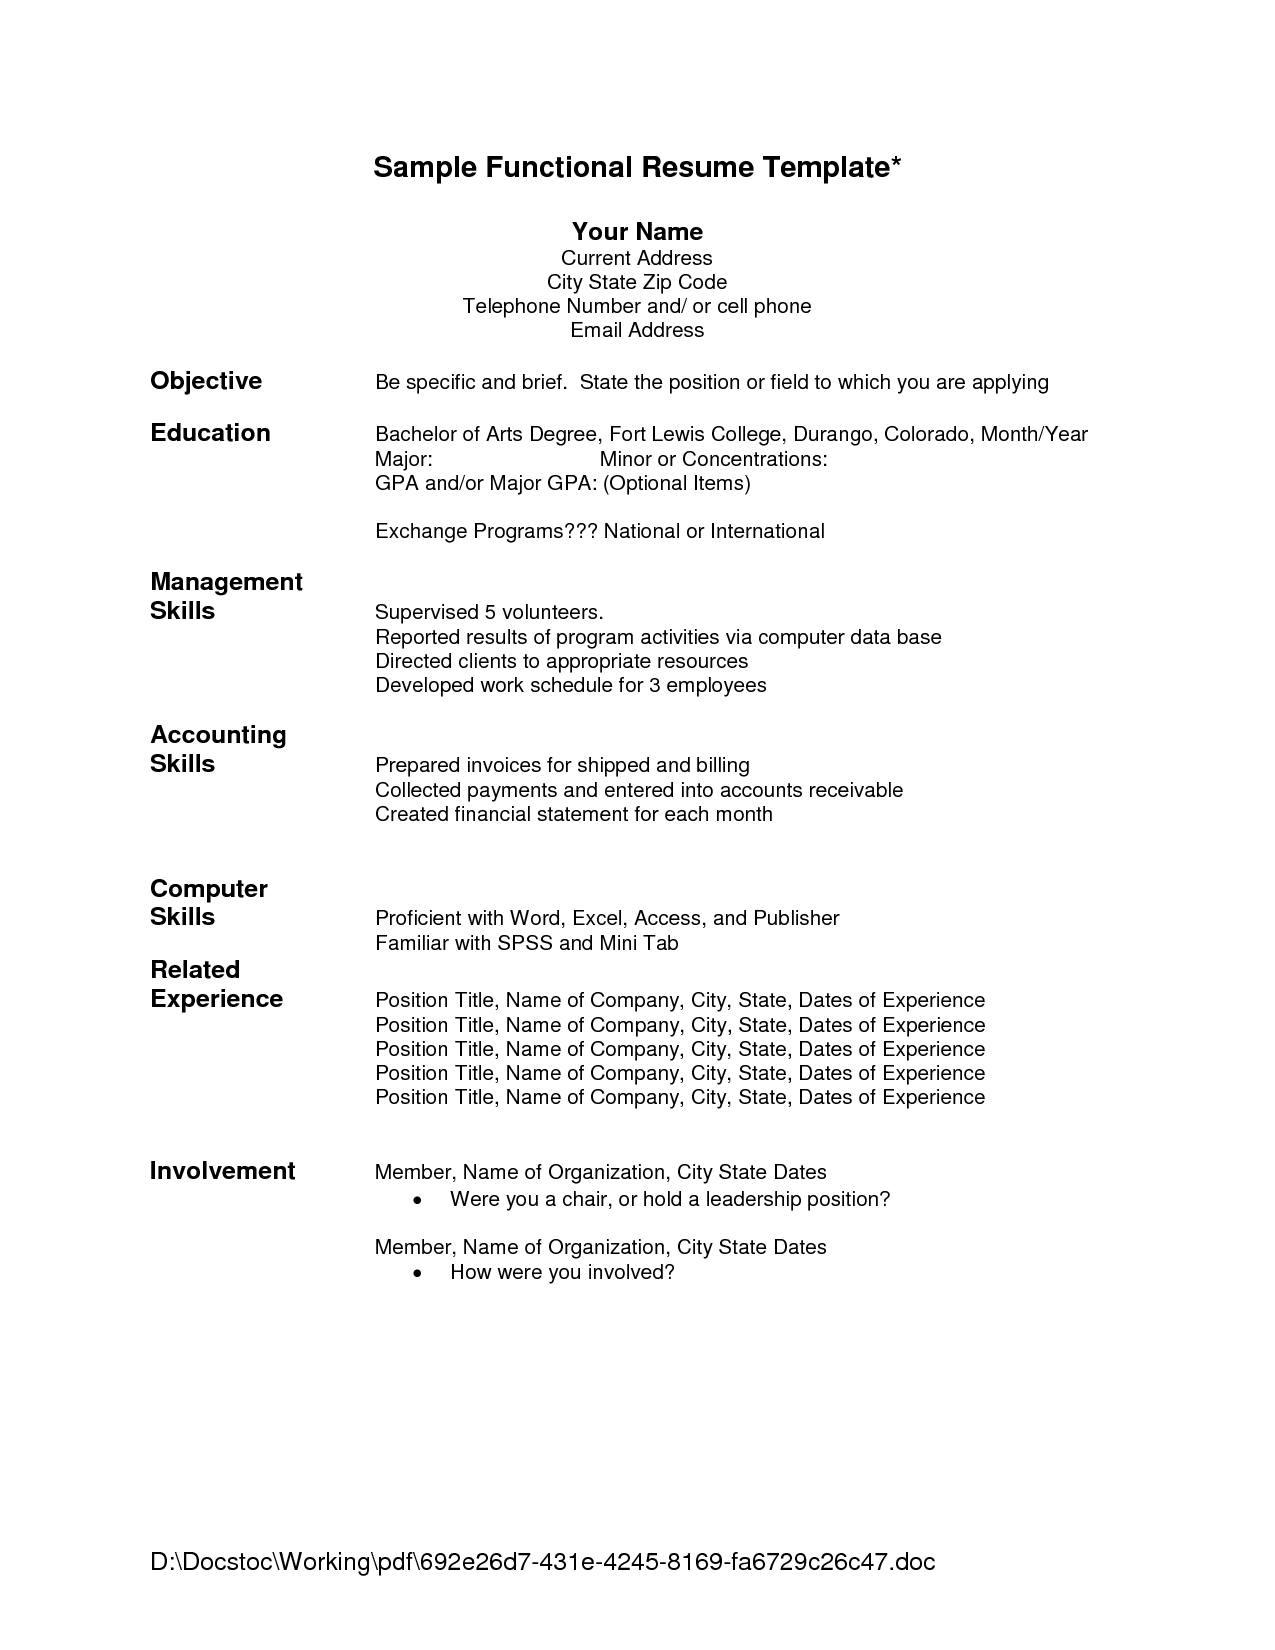 Chronological Resume Template Sample One Page Functional Resume  Google Search  Resumes